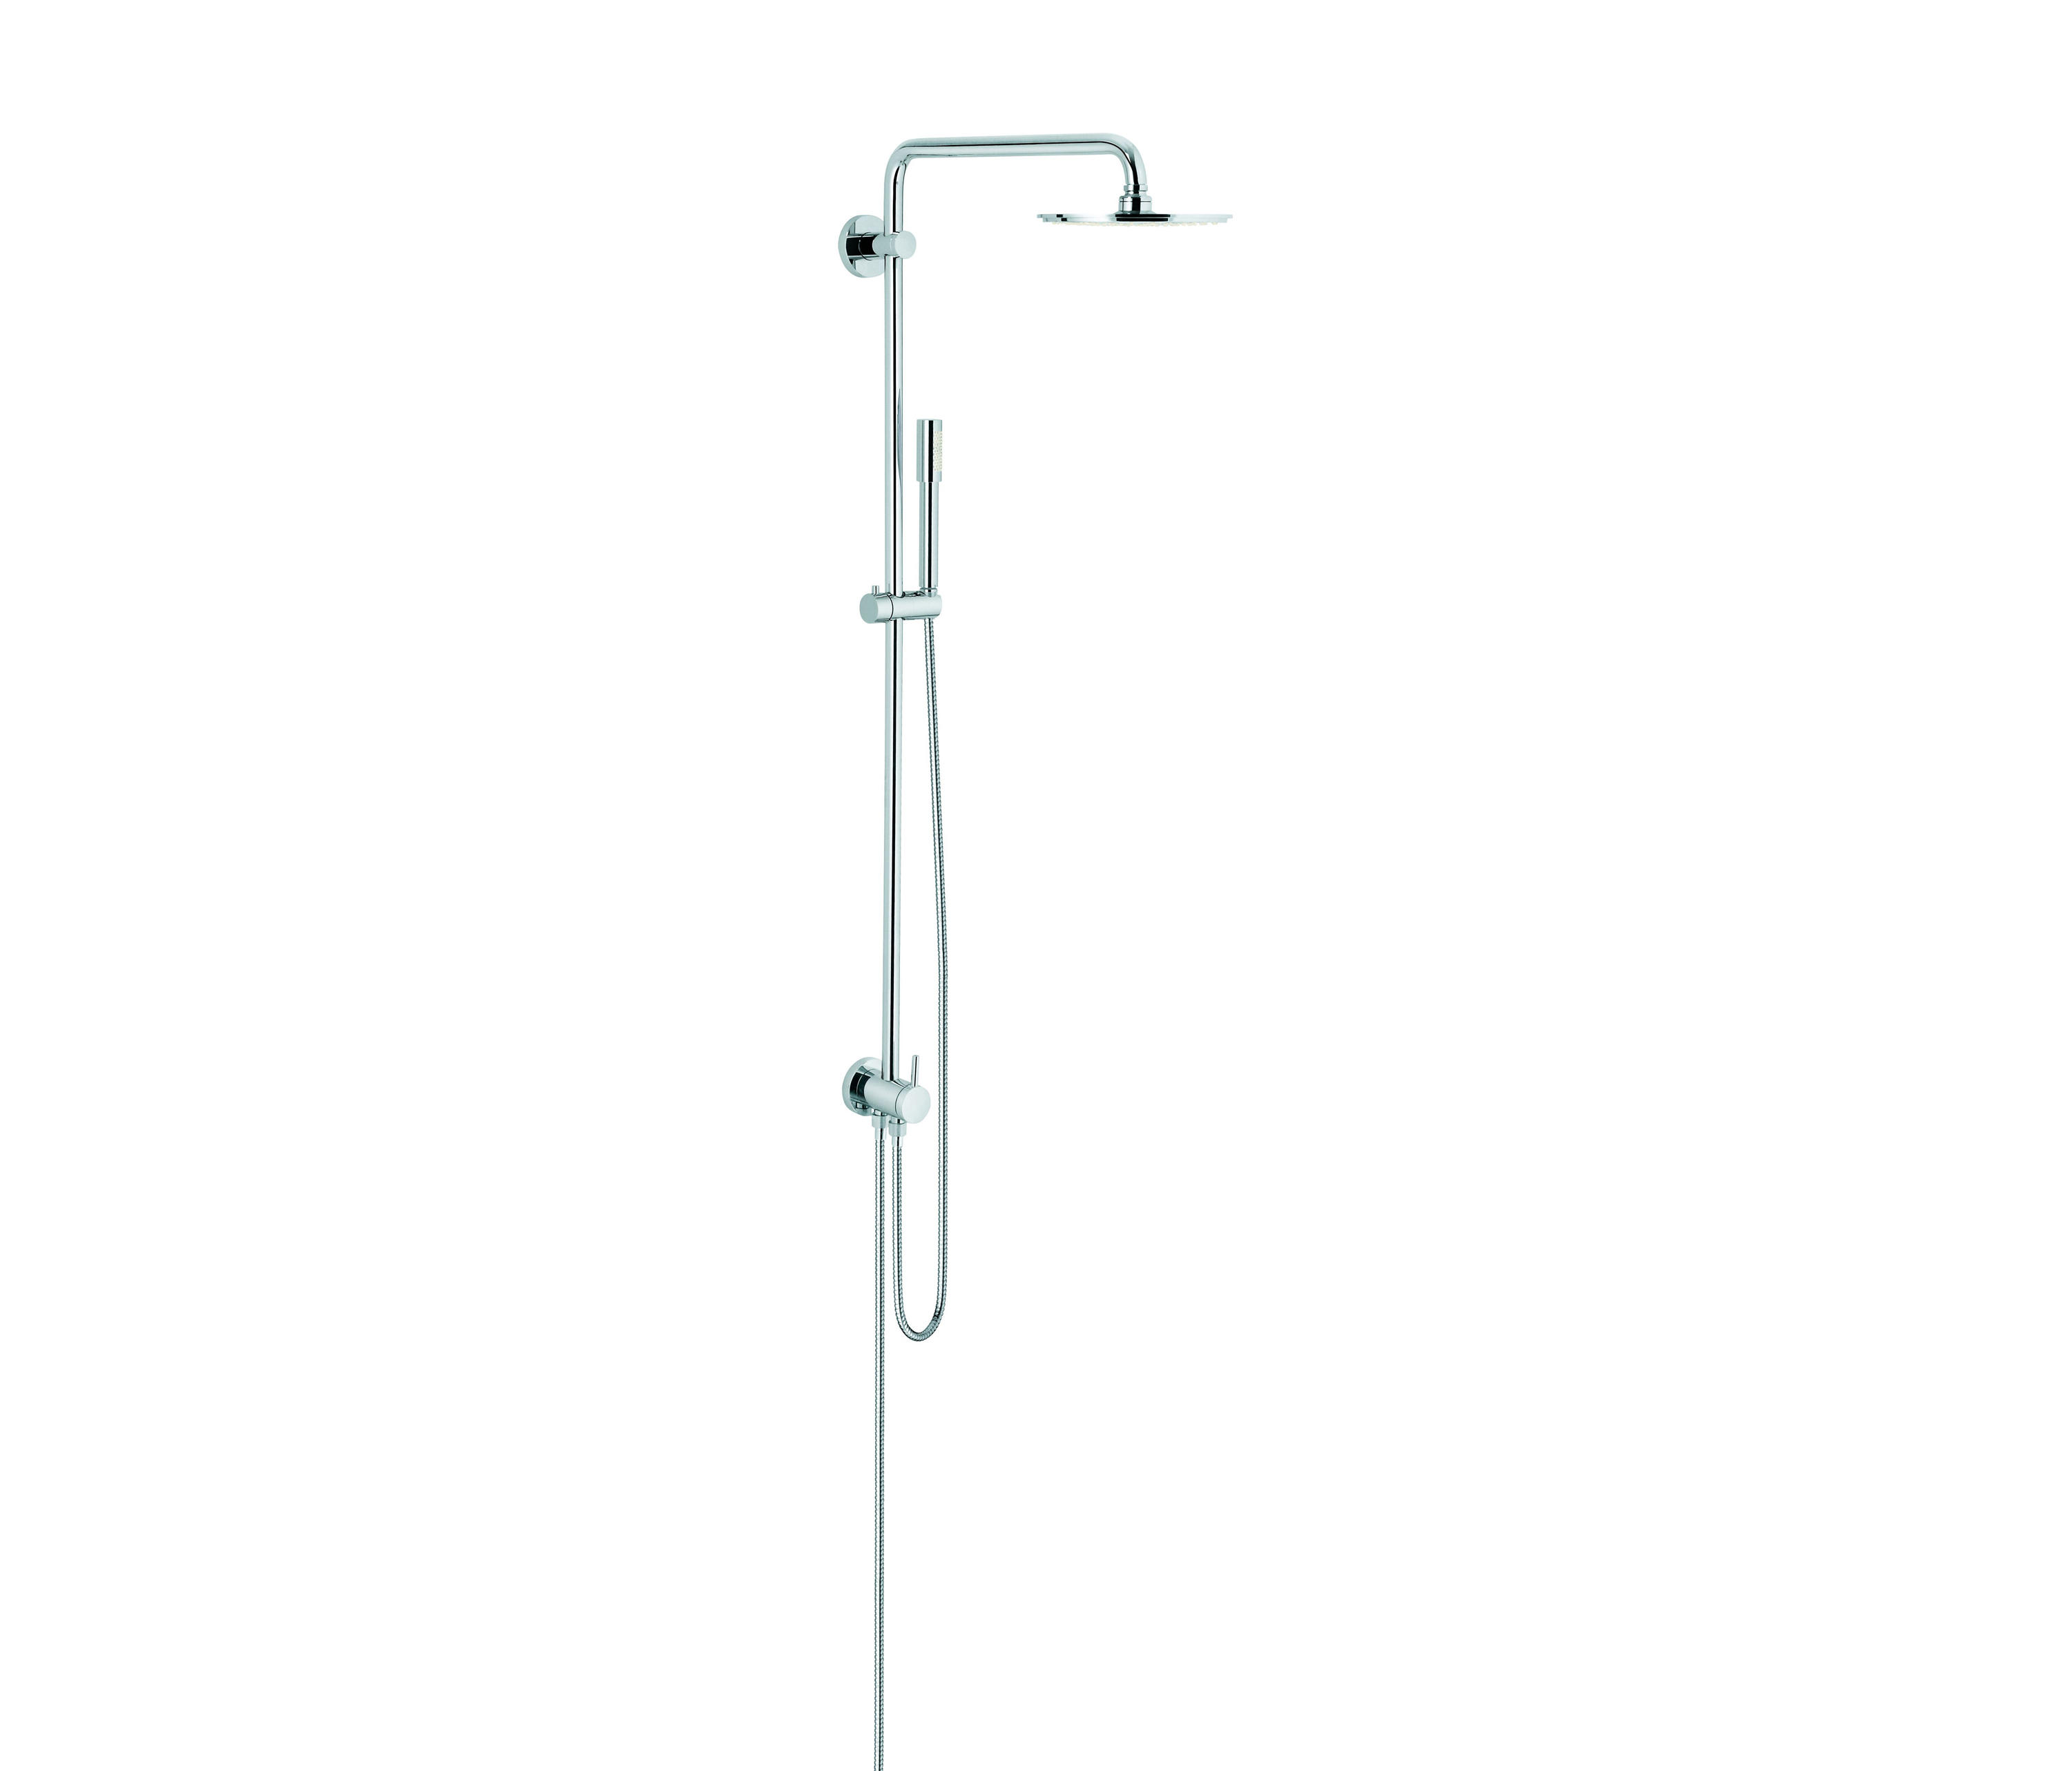 rainshower system 210 shower system with diverter shower taps mixers from grohe architonic. Black Bedroom Furniture Sets. Home Design Ideas